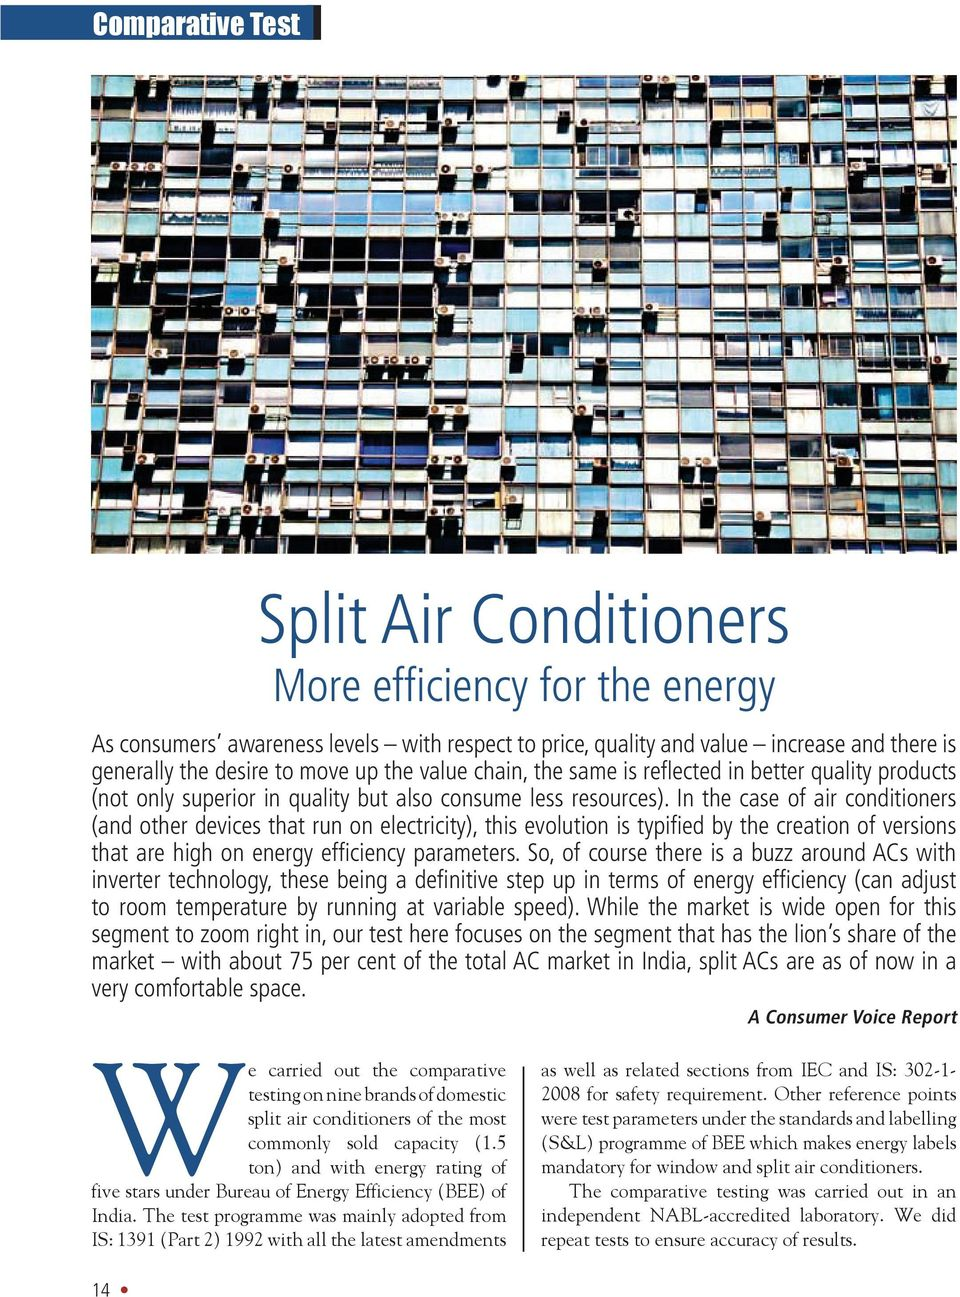 We carried out the comparative Split Air Conditioners More